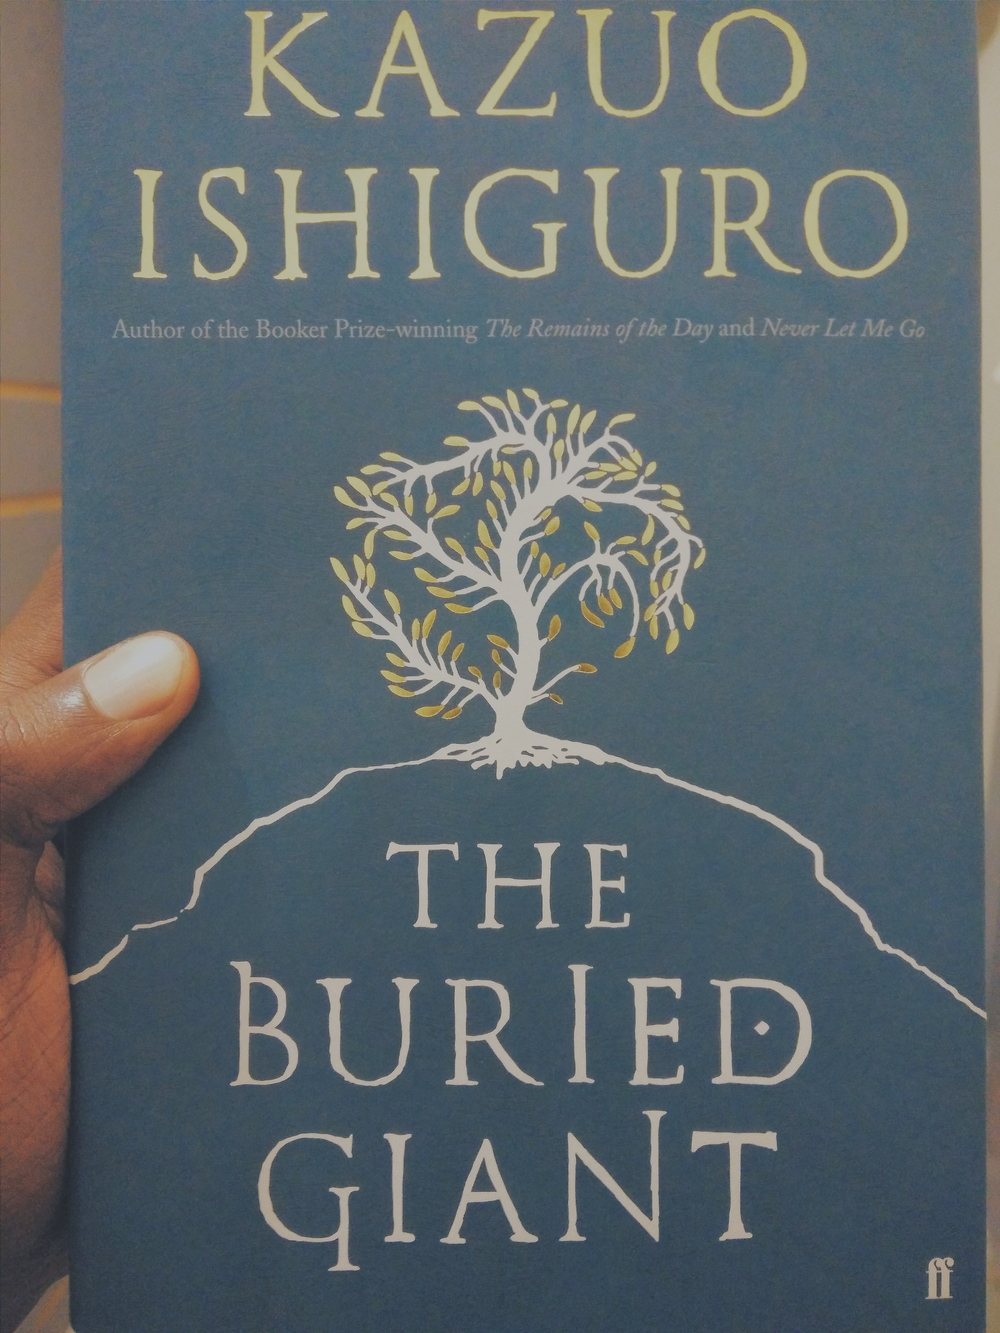 Kazuo Ishiguro's masterpiece. I think he has been hanging out too much with Neil Gaiman.